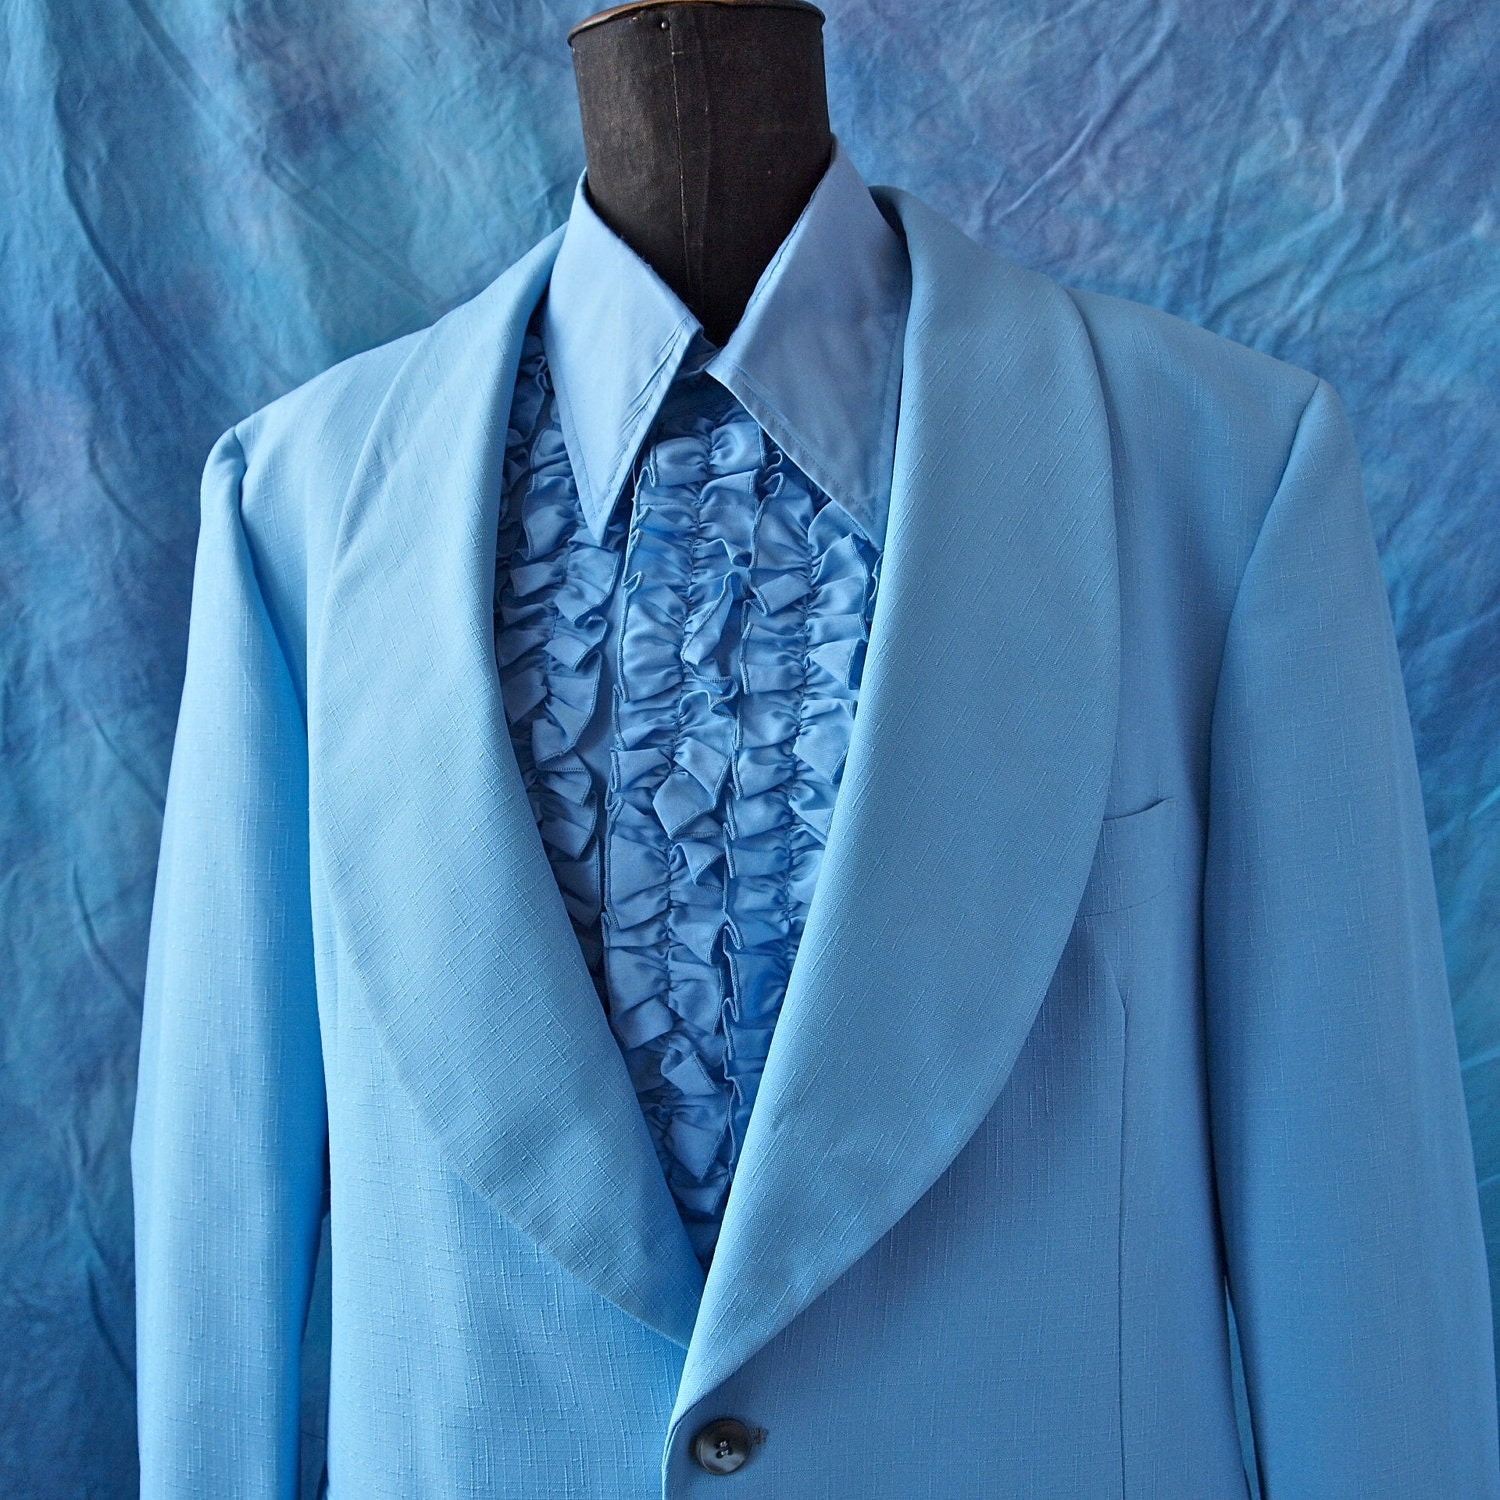 After six 70 39 s baby blue prom tuxedo wide lapels by for Powder blue tuxedo shirt